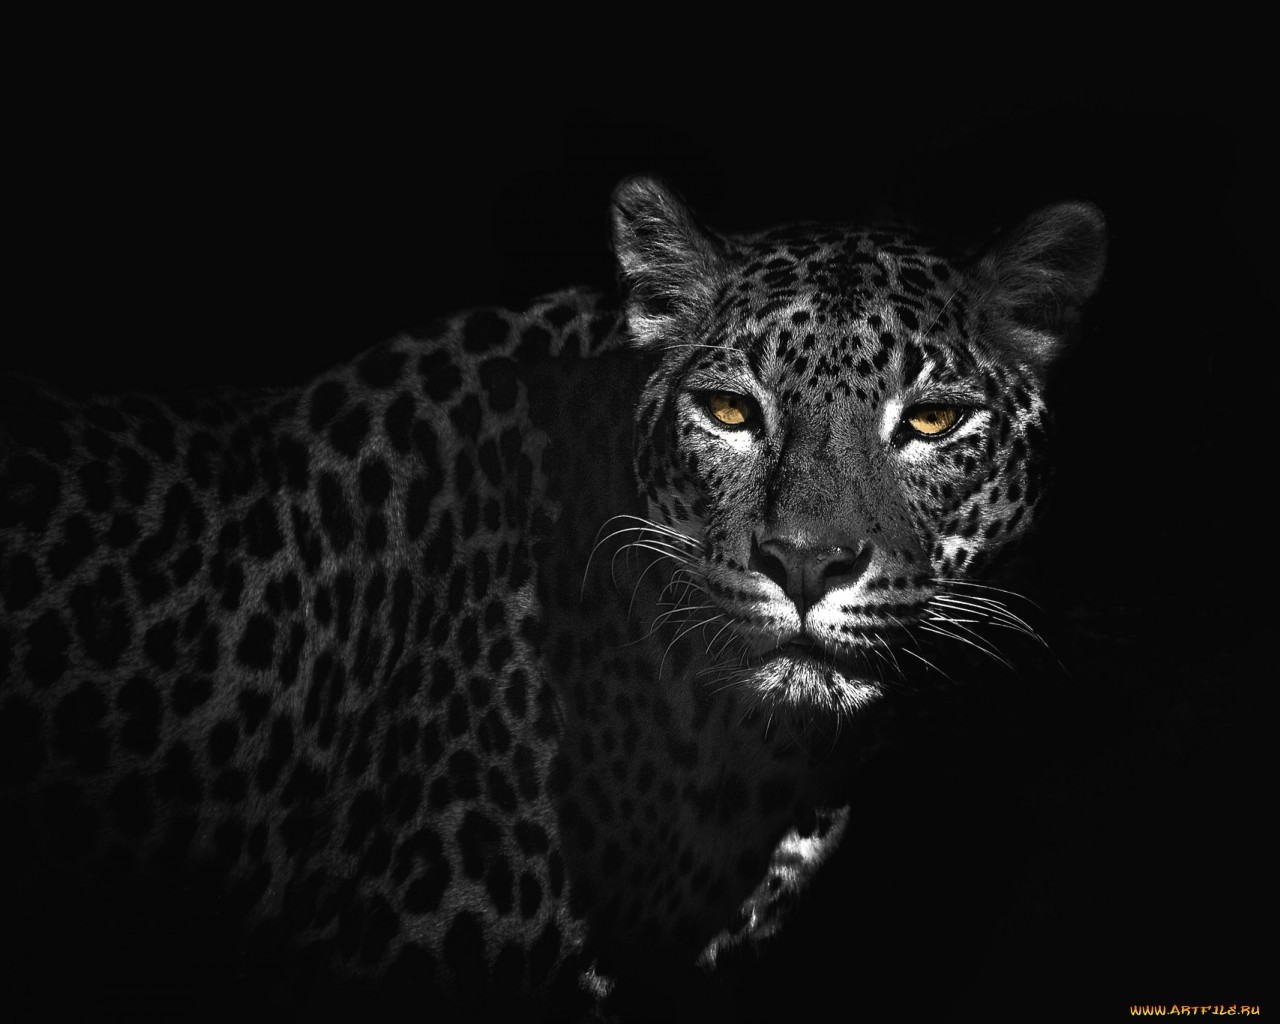 20776 download wallpaper Animals, Leopards screensavers and pictures for free